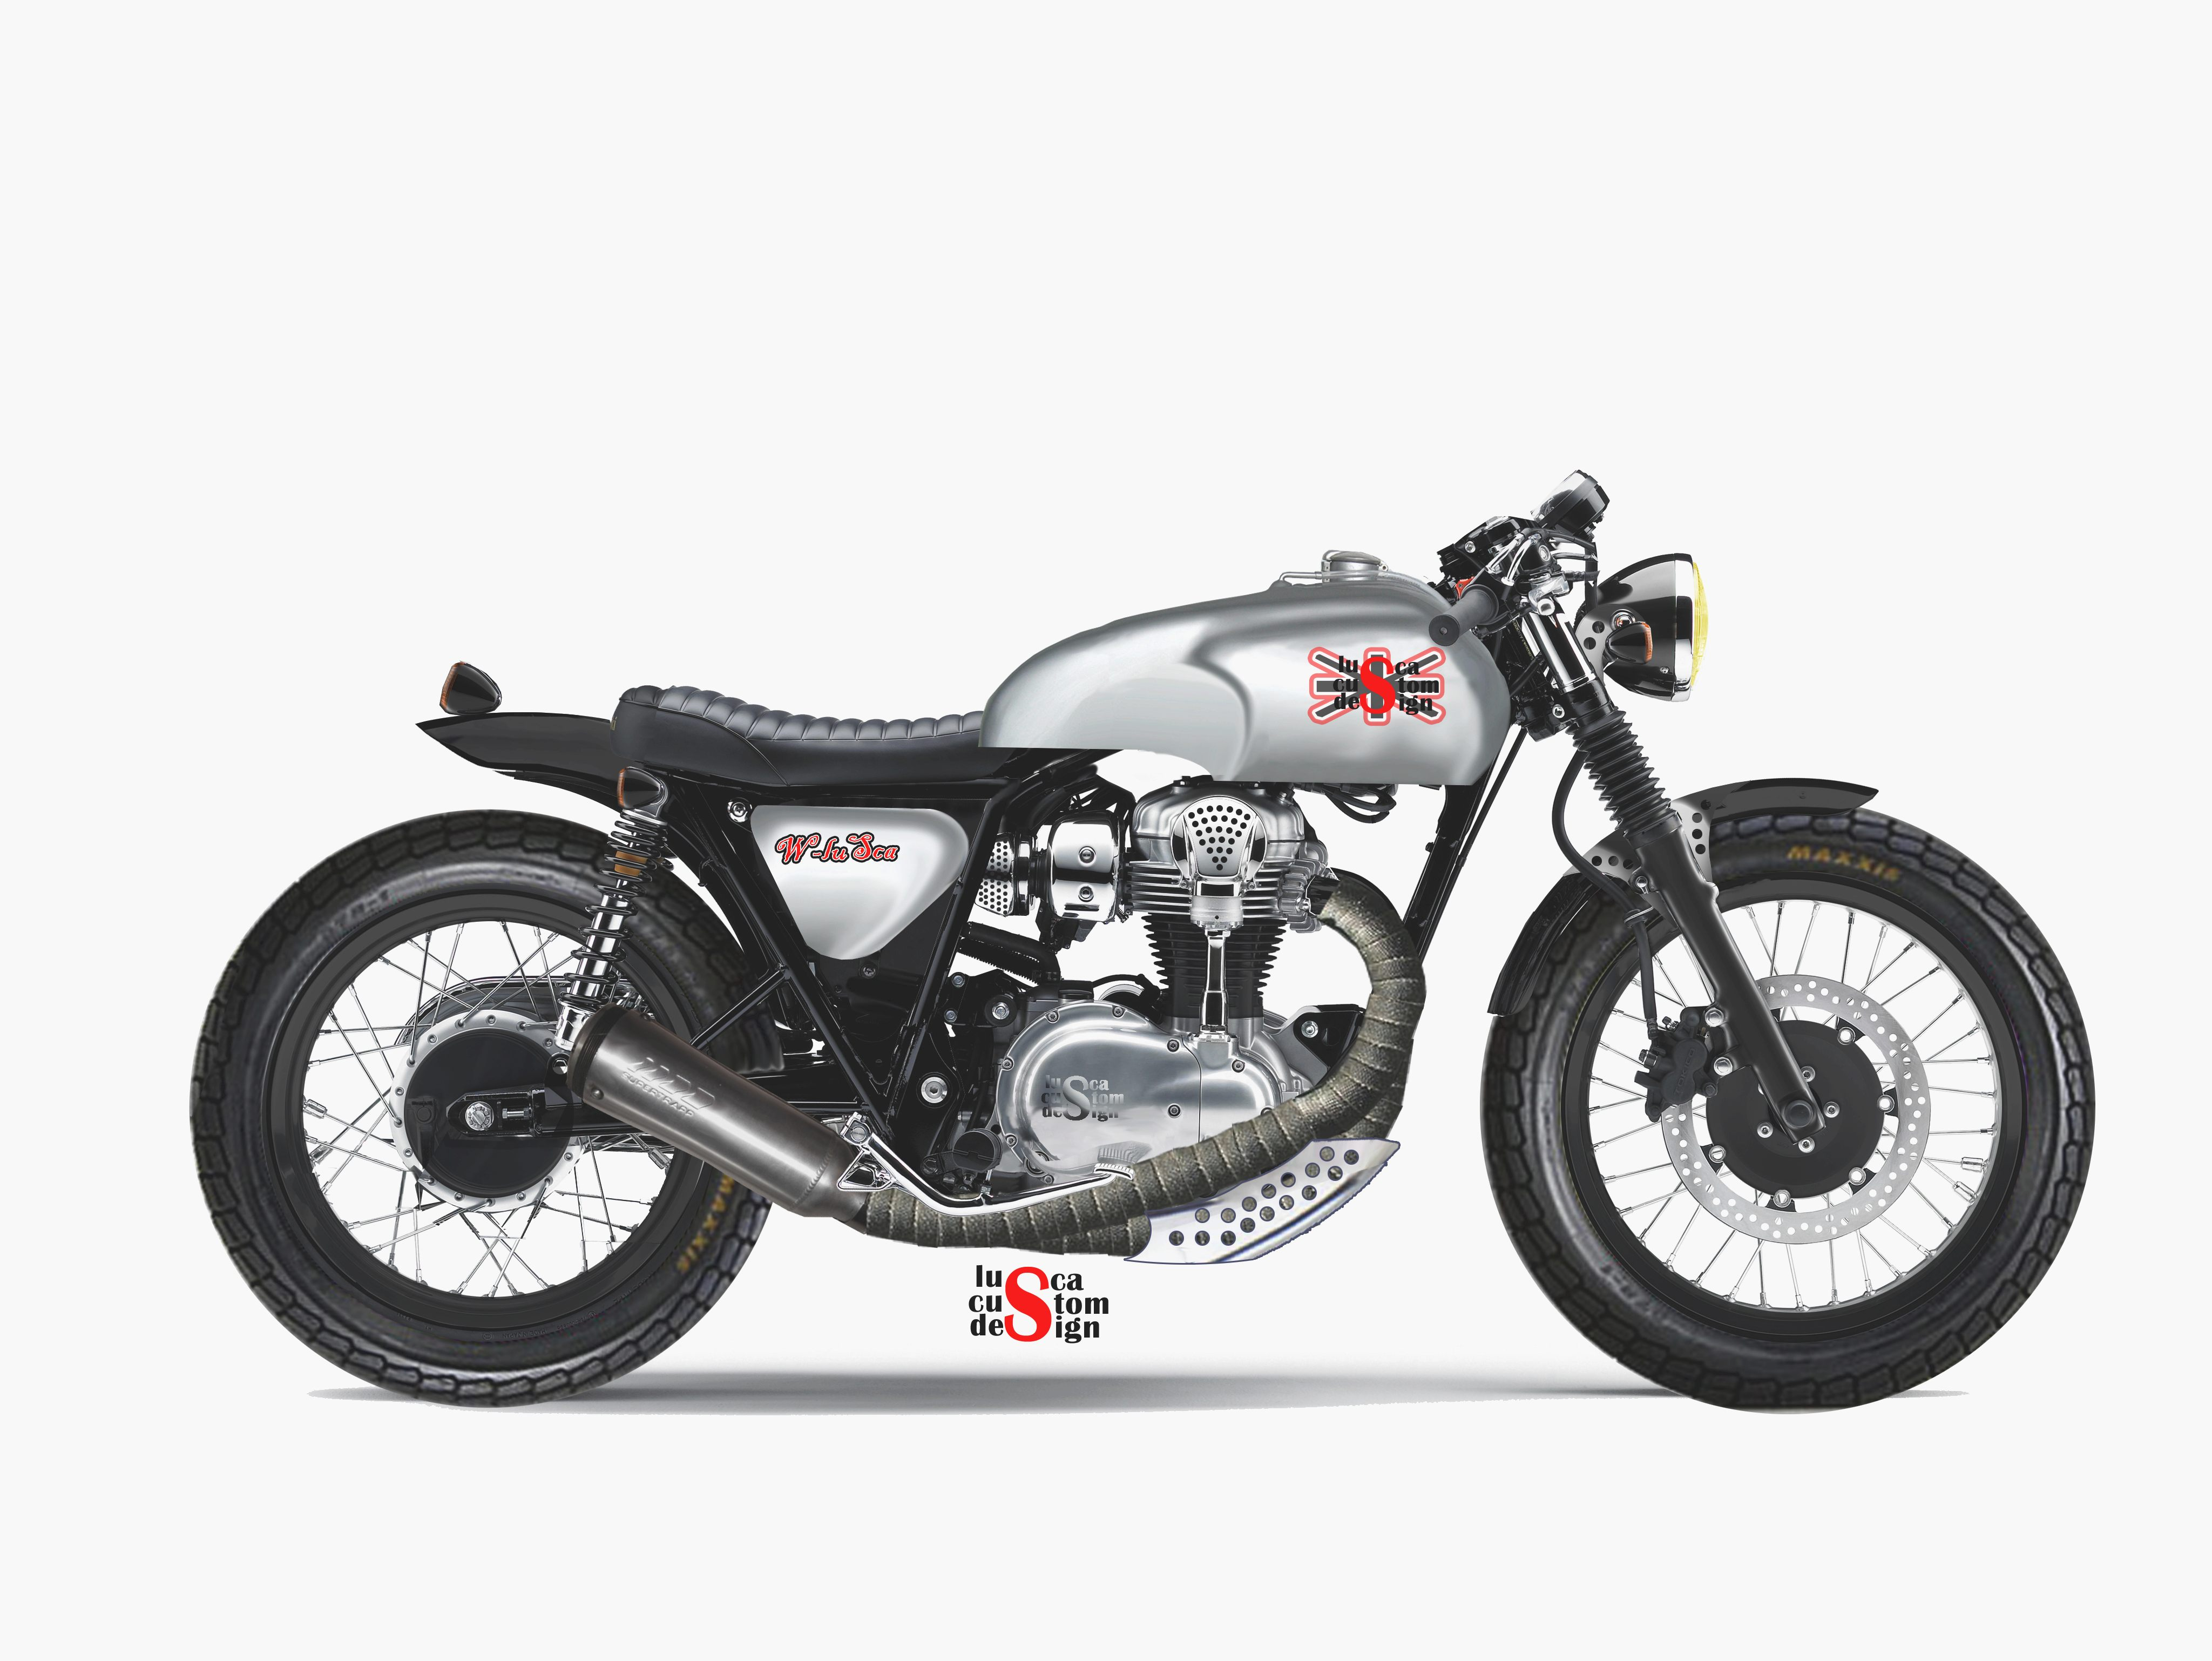 Kawasaki W800 Cafe Style images #86151